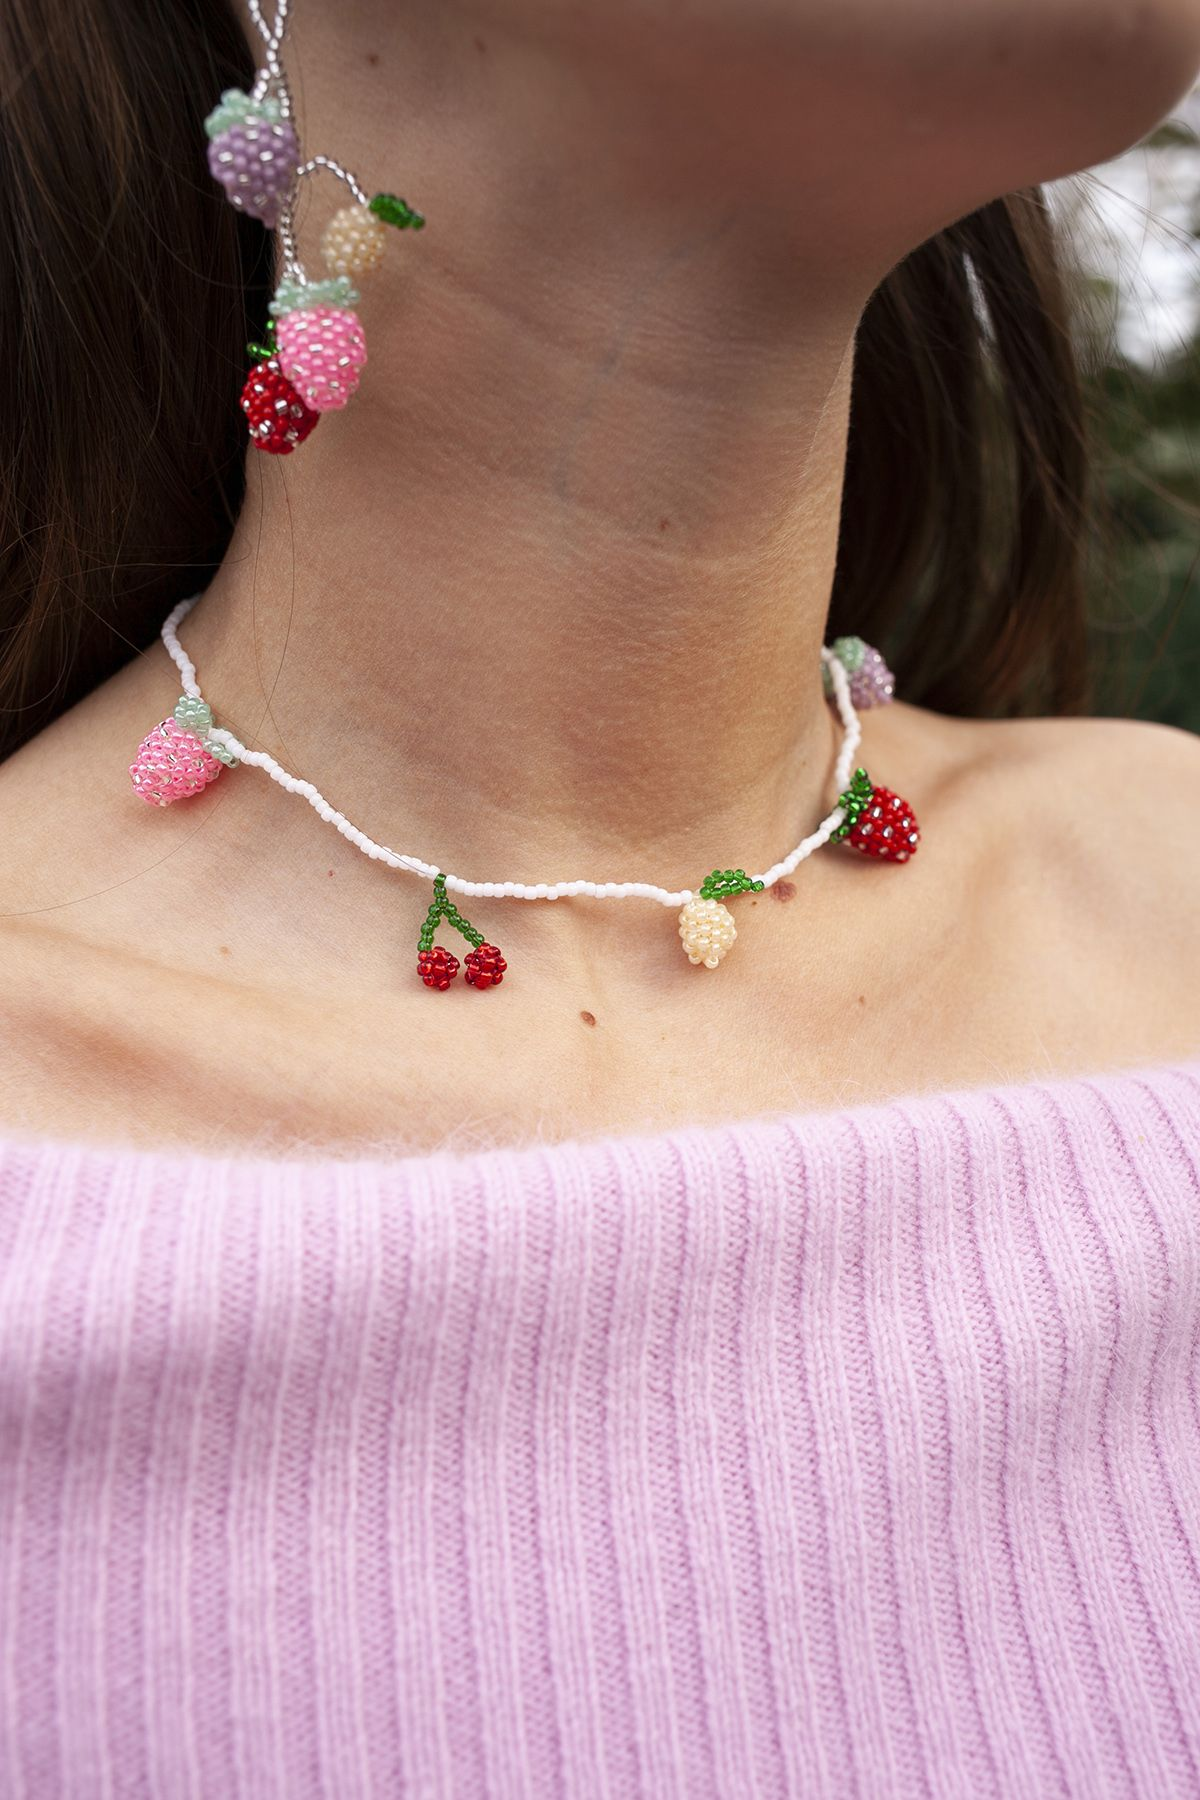 The Fruit Salad Necklace